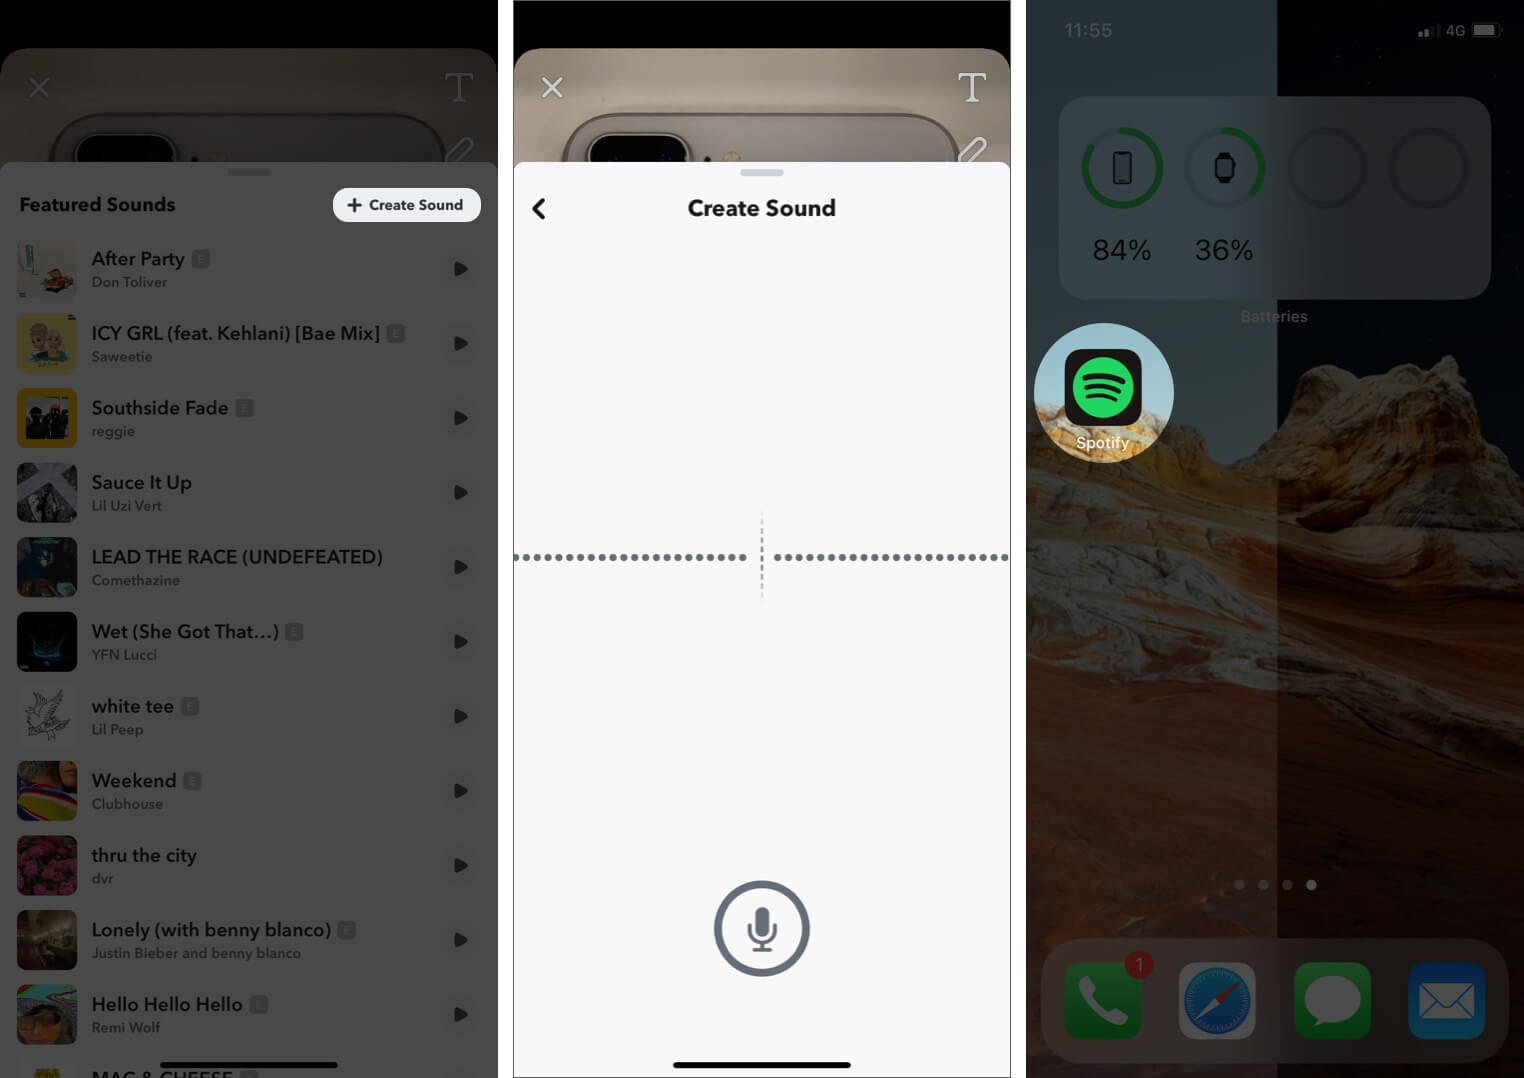 Tap on Create Sound and Then Open Music App on iPhone